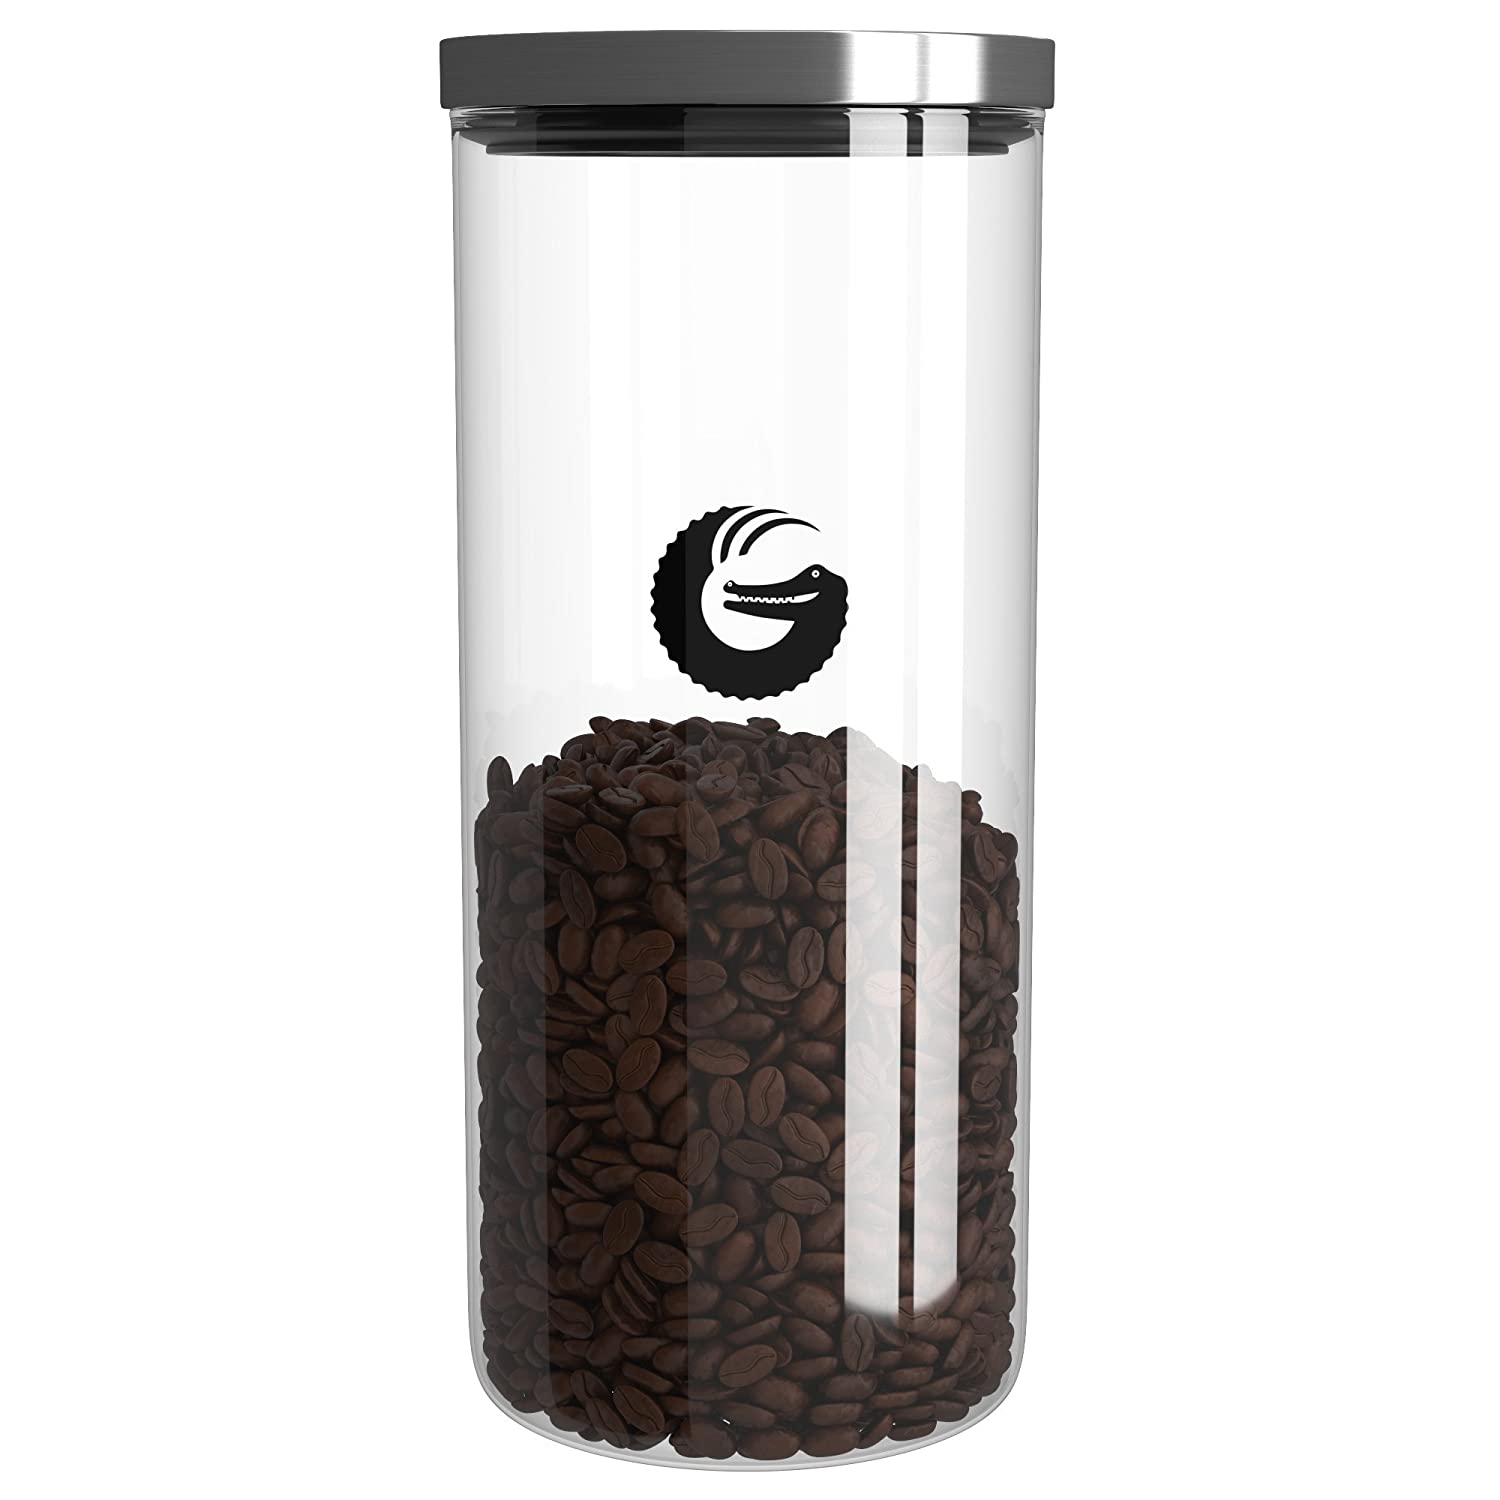 Coffee Gator Glass Storage Container – Display Jar for Pods, Beans and Grounds with 'Pop and Lock' Lid – 1.3l, 35 Nespresso